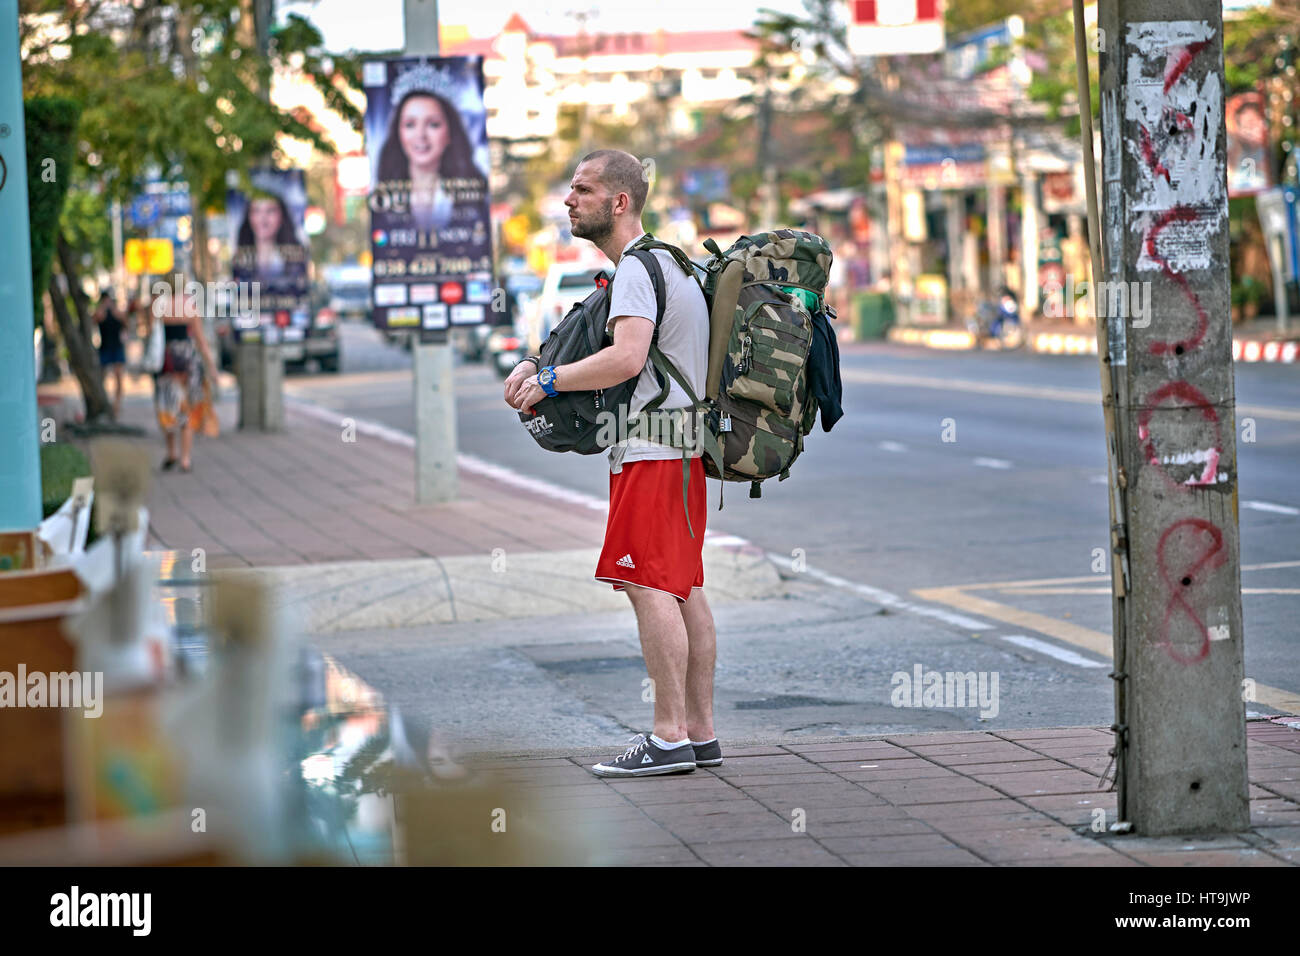 Backpacker Thailand tourist - Stock Image